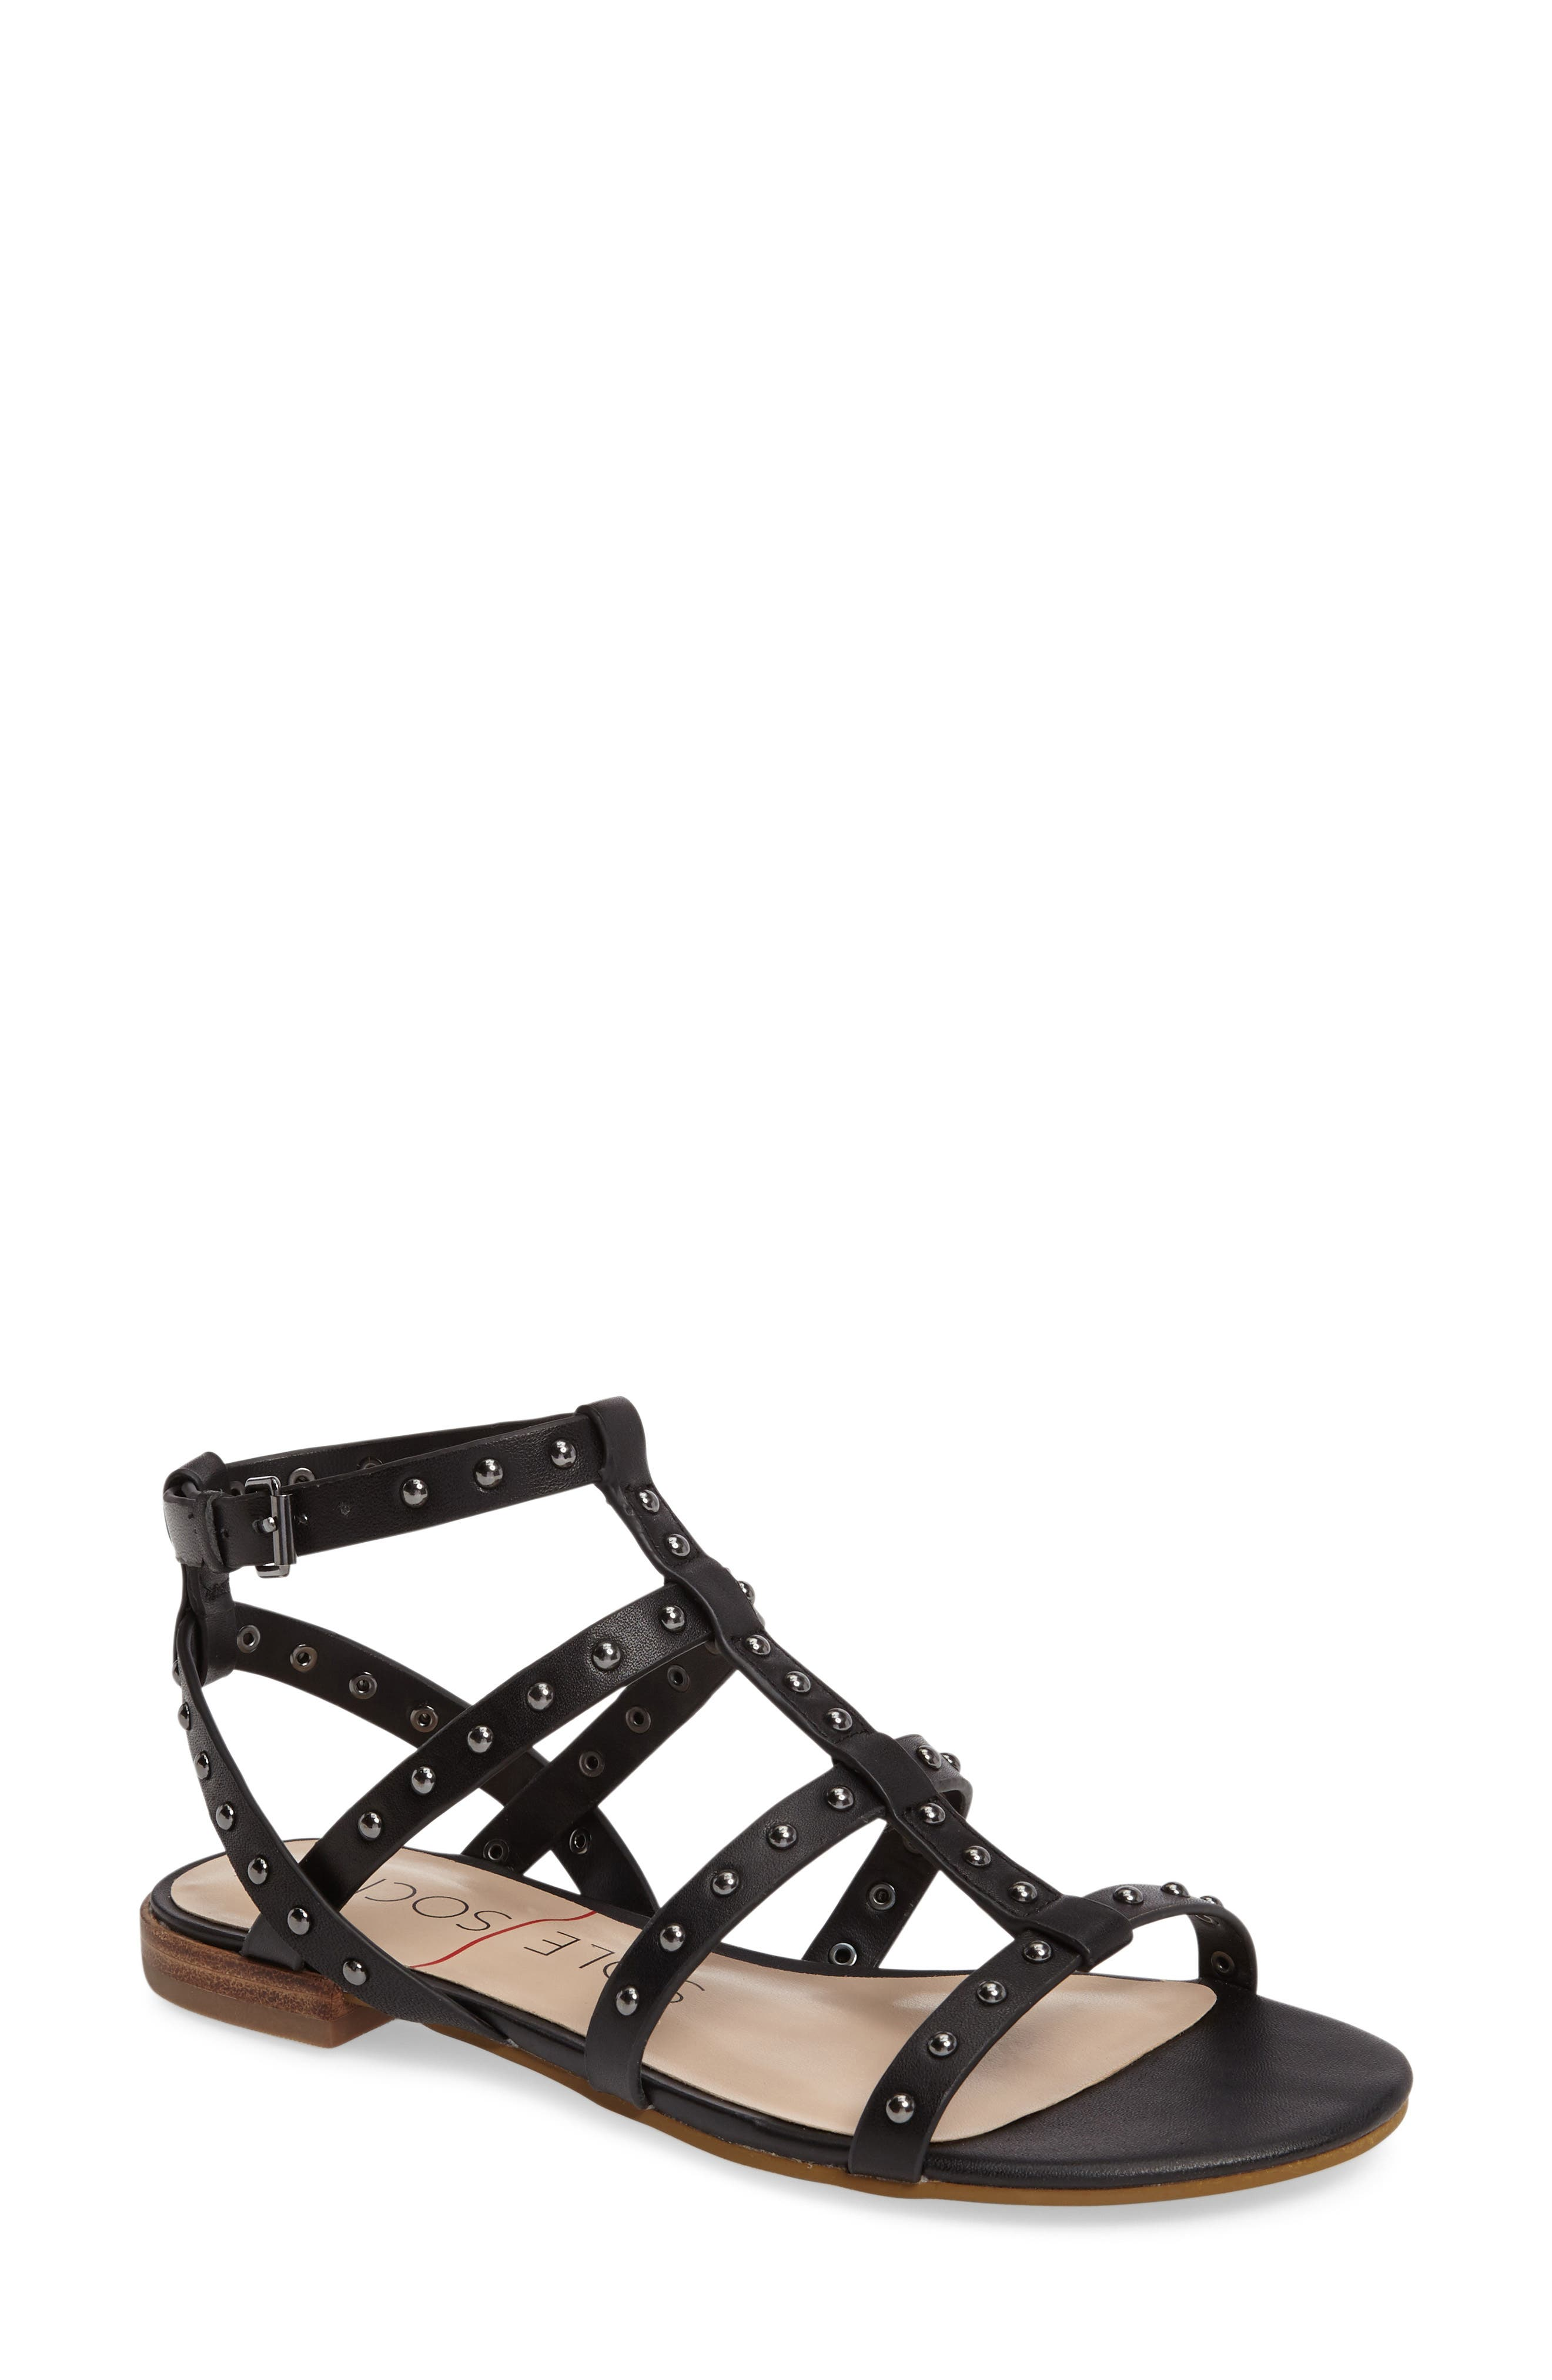 Celine Sandal,                         Main,                         color,